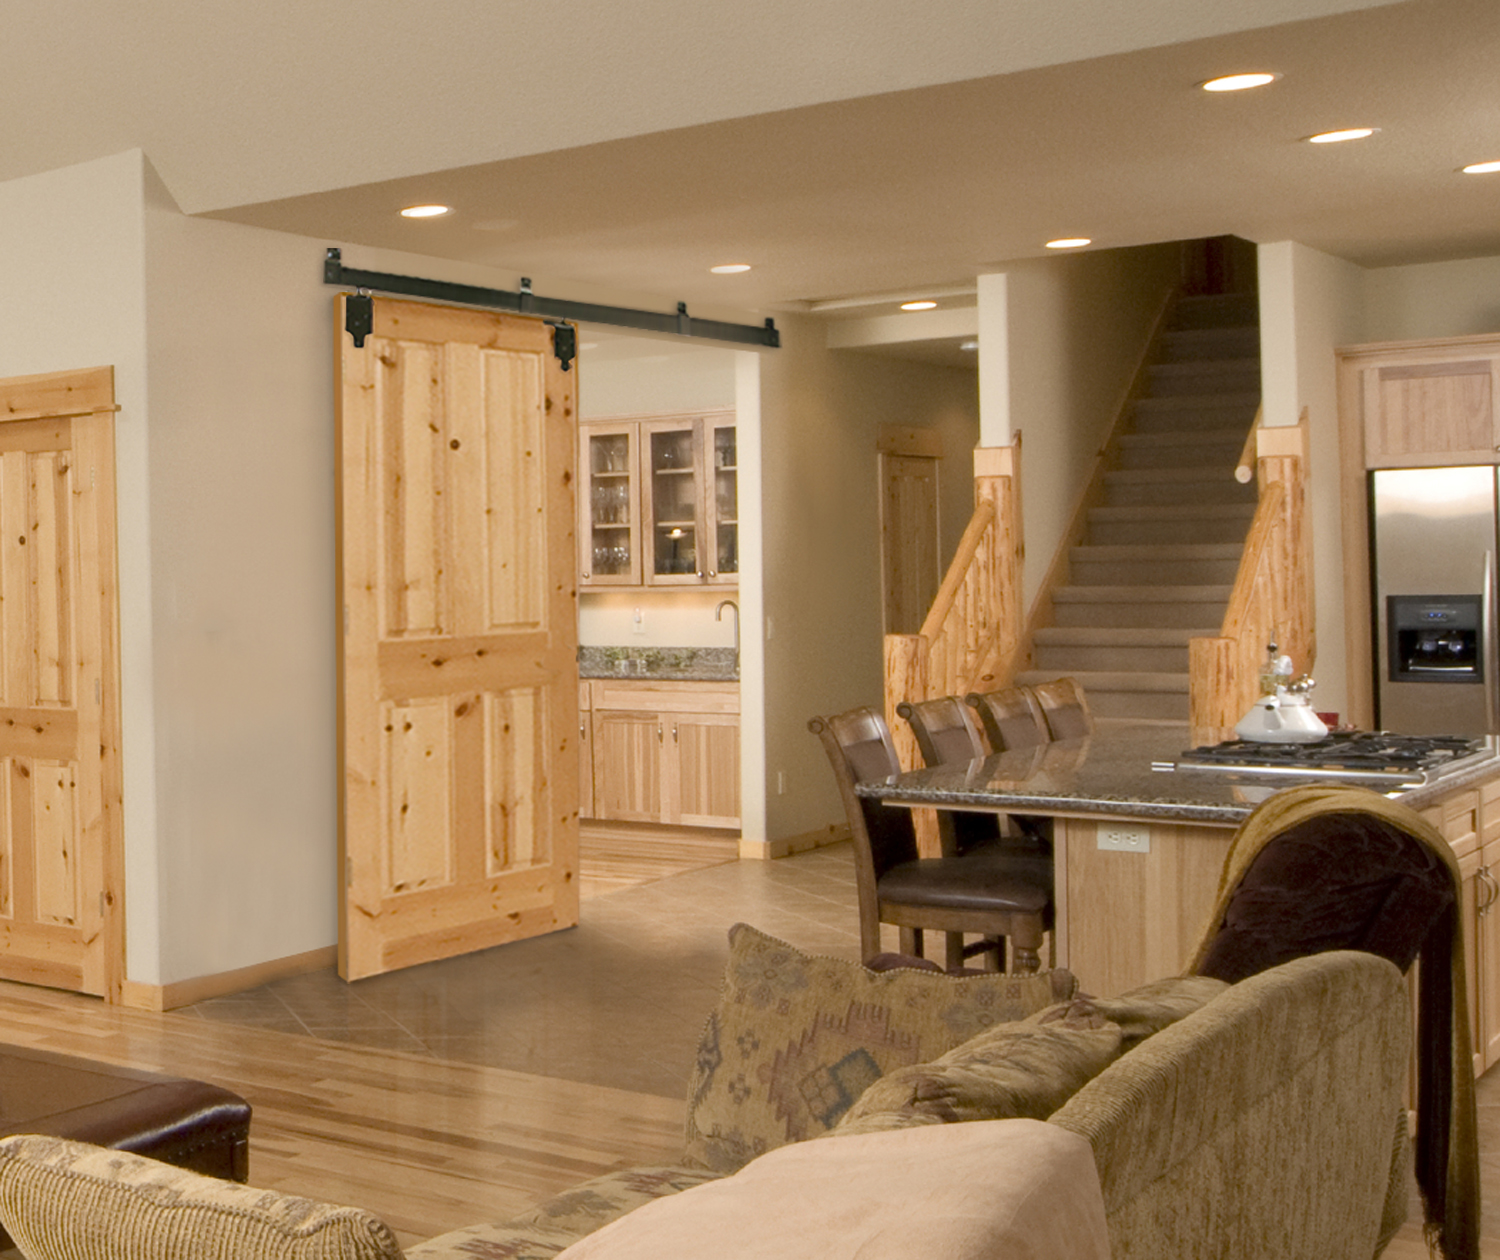 How to Apply the Rustic Modern Style to Your Living Spaces